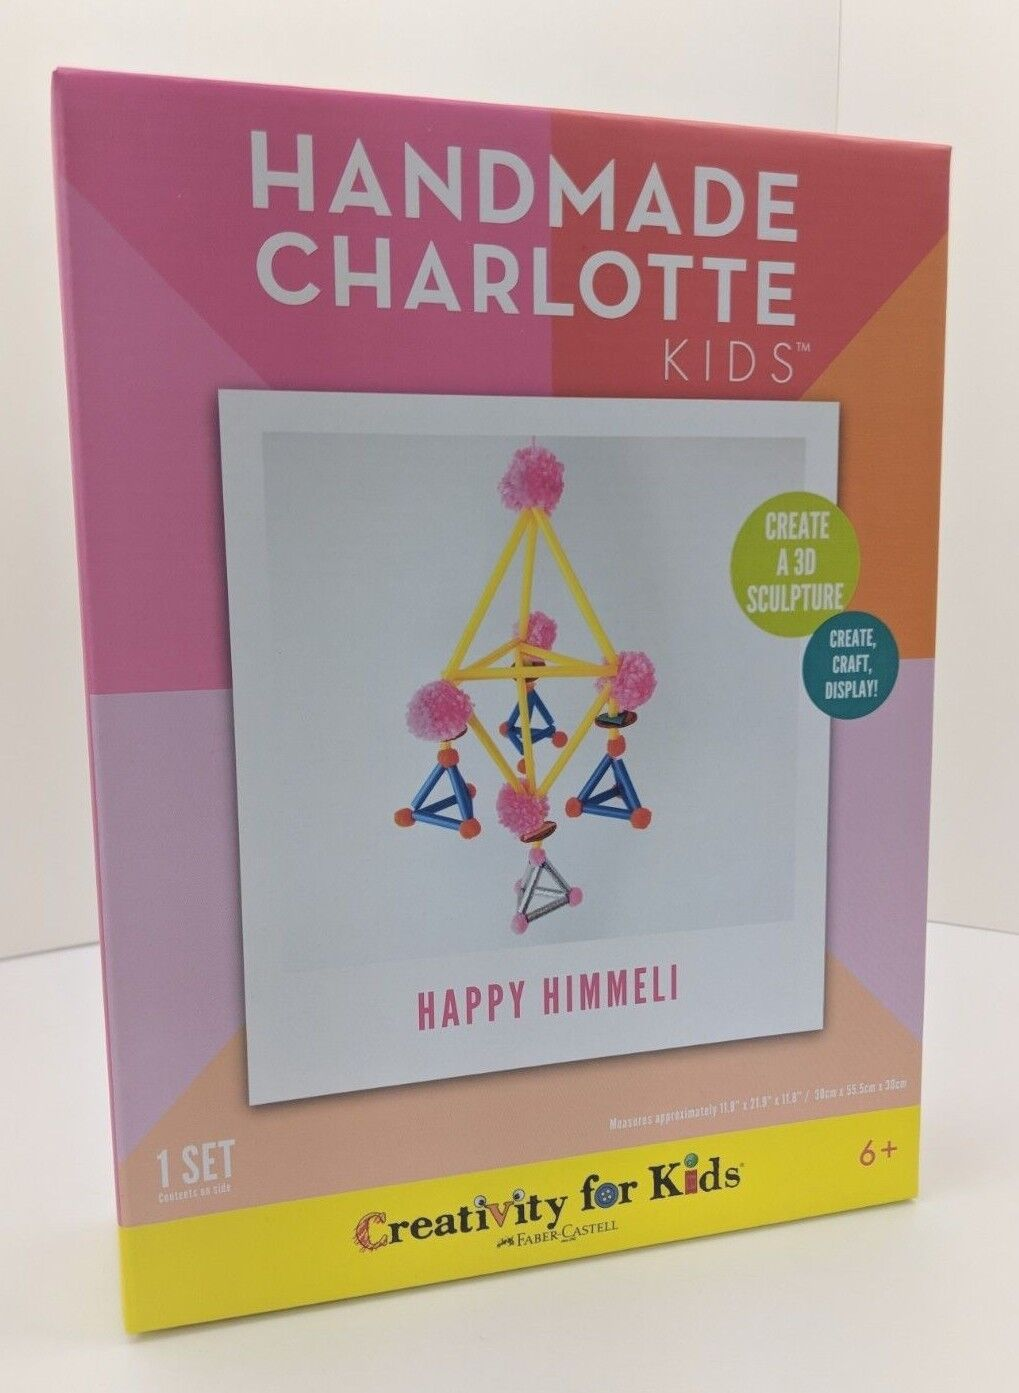 Things For Kids To Do In Charlotte Handmade Charlotte Kids Happy Himmeli Craft Diy Kit 92633306321 Ebay